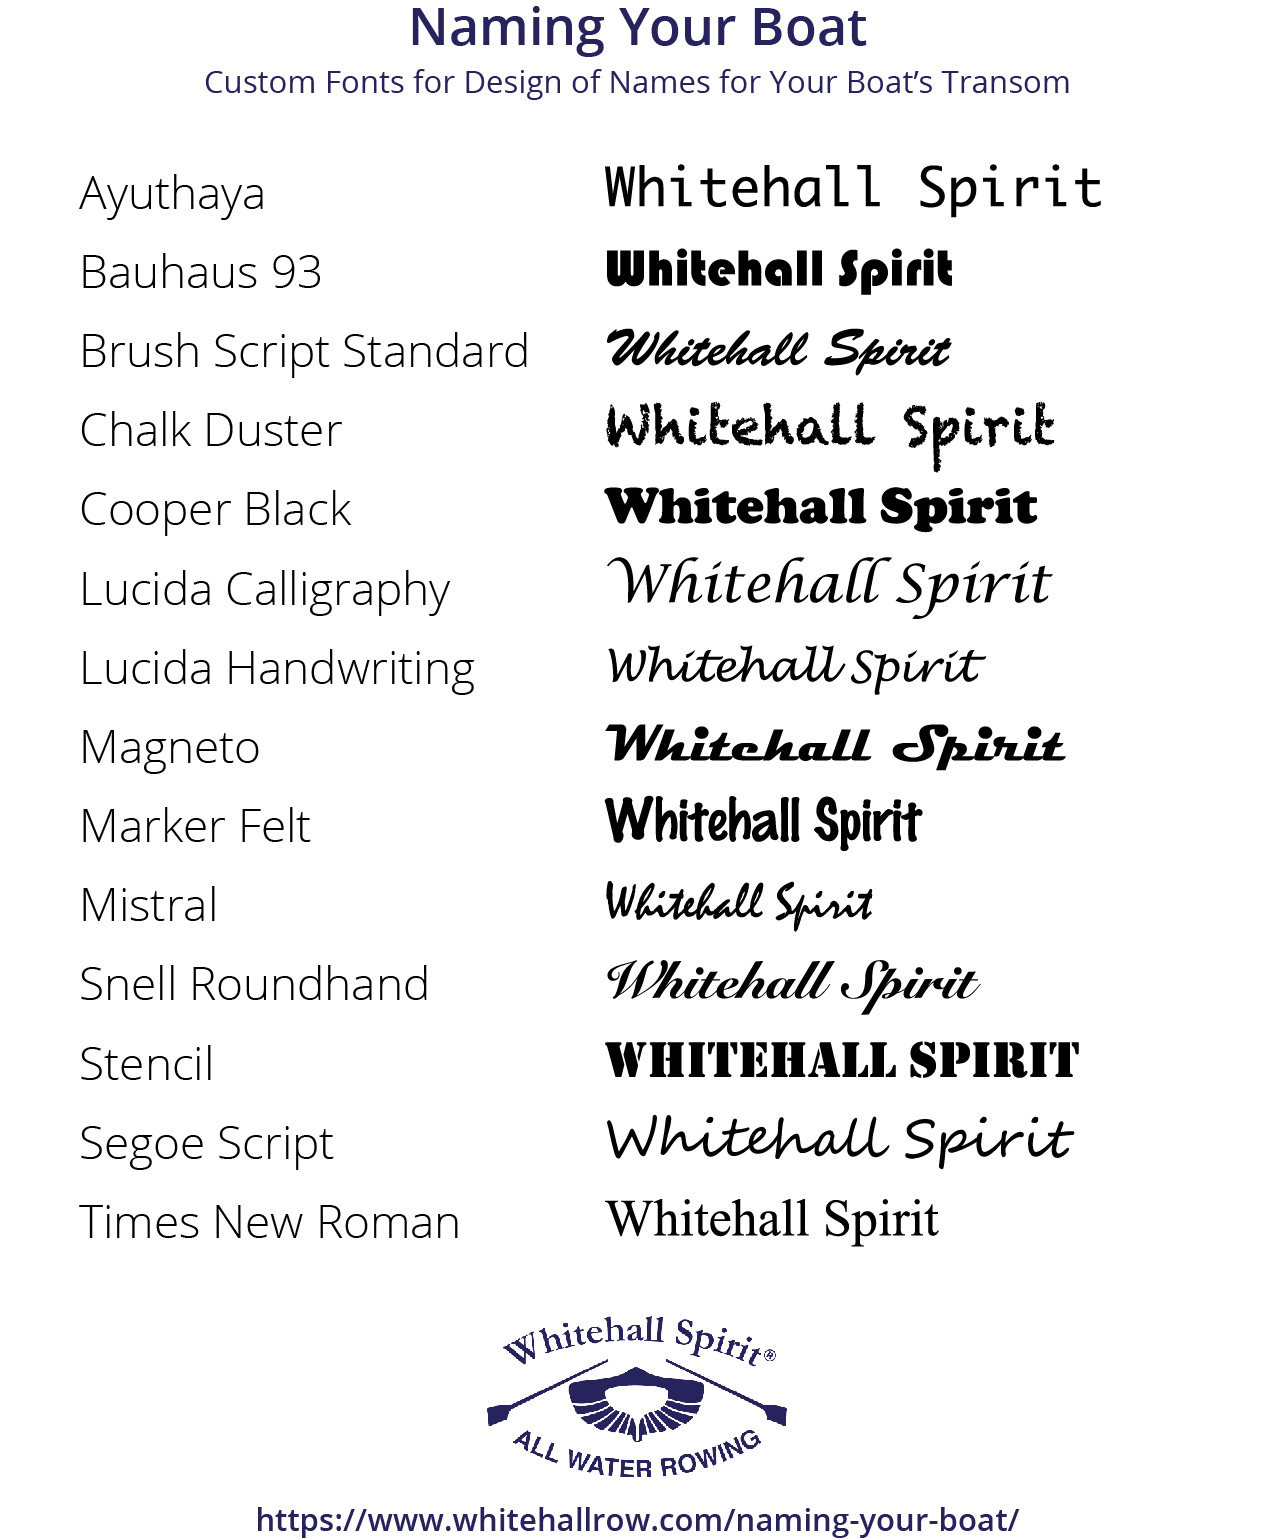 Whitehall-Rowing-and-Sail-Boat-Transom-name-template-font-styles